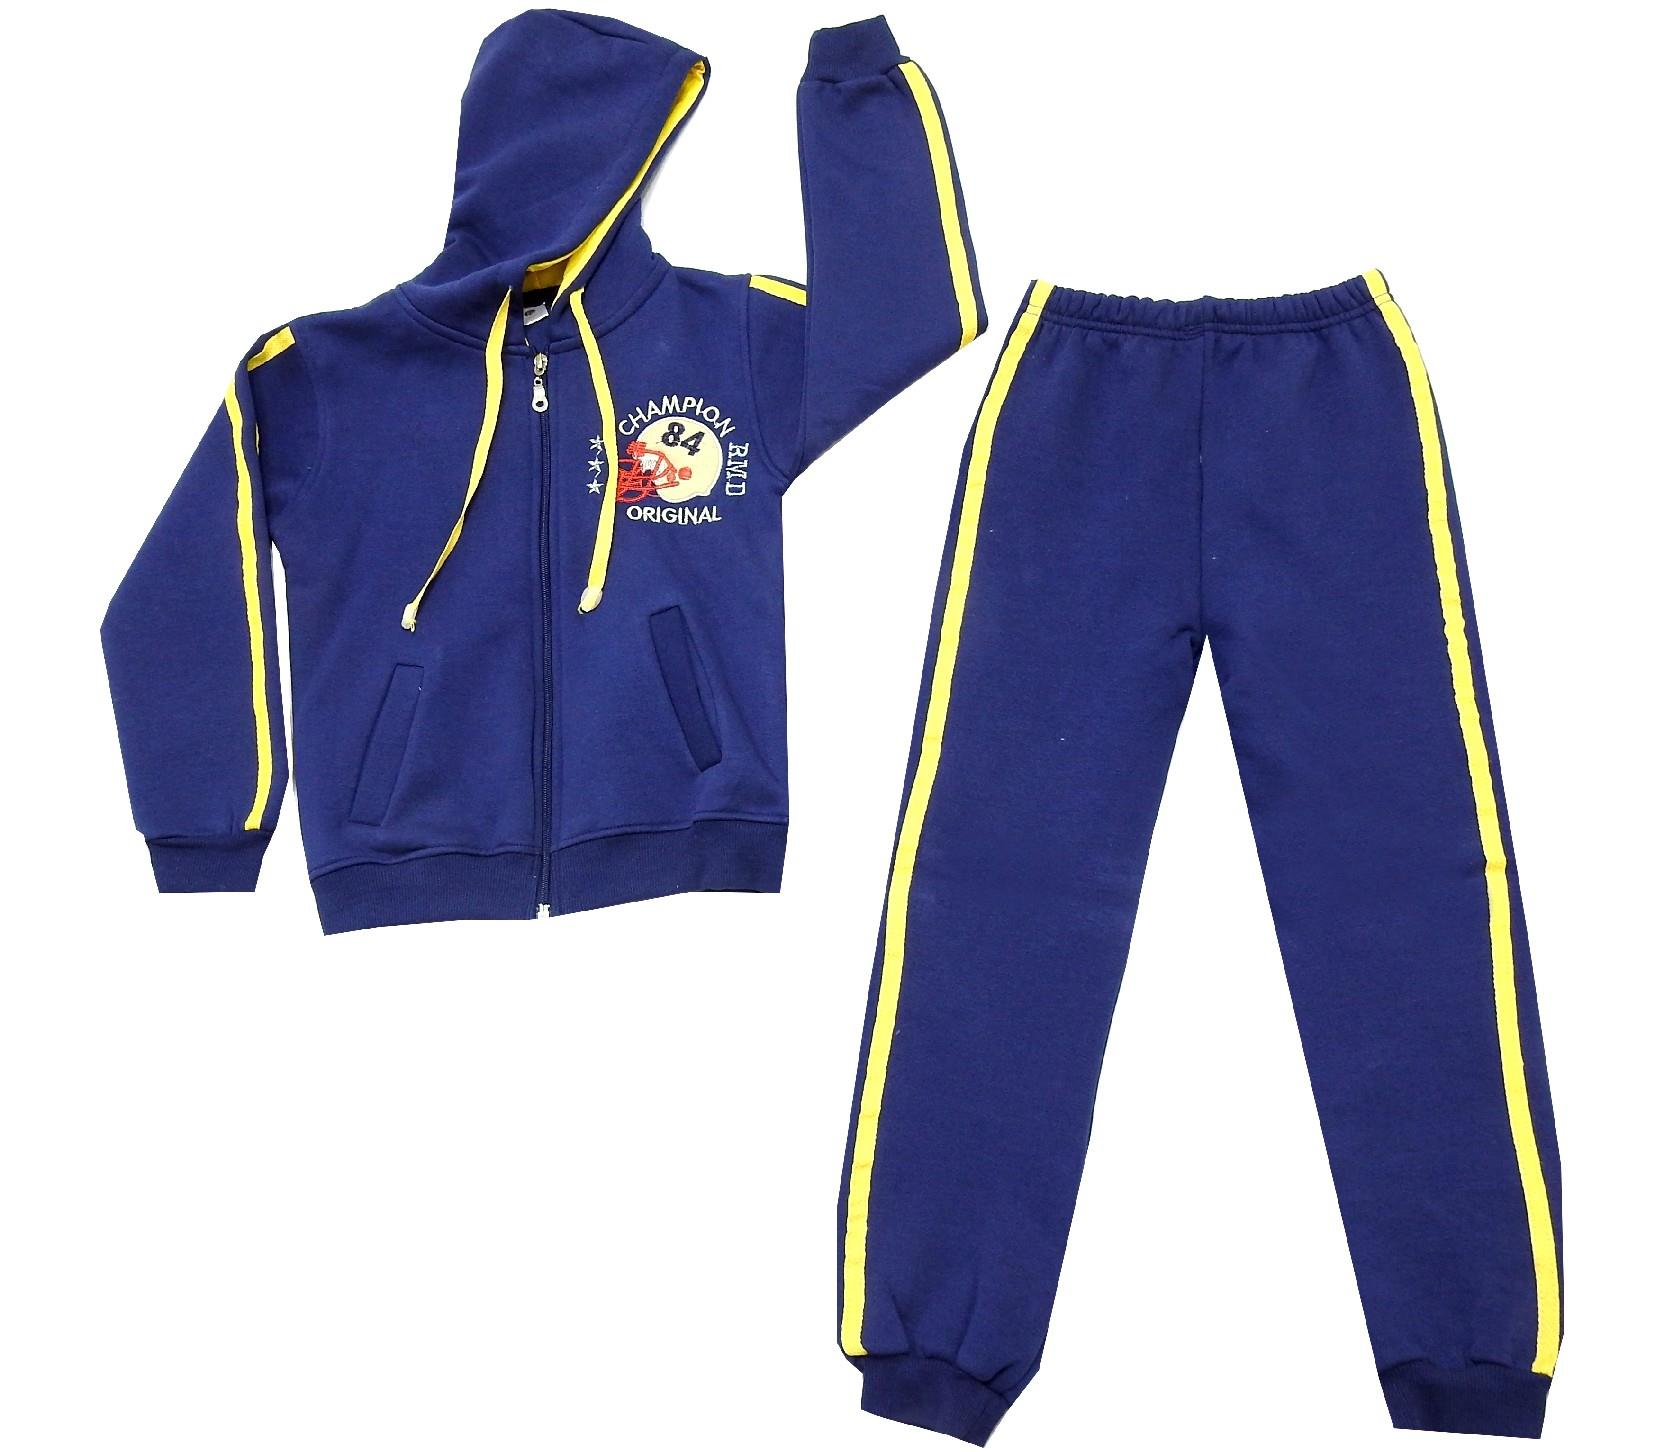 WHOLESALE HOODIE SWEATSUIT DOUBLE SET FOR KIDS (9-10-11-12 AGE)